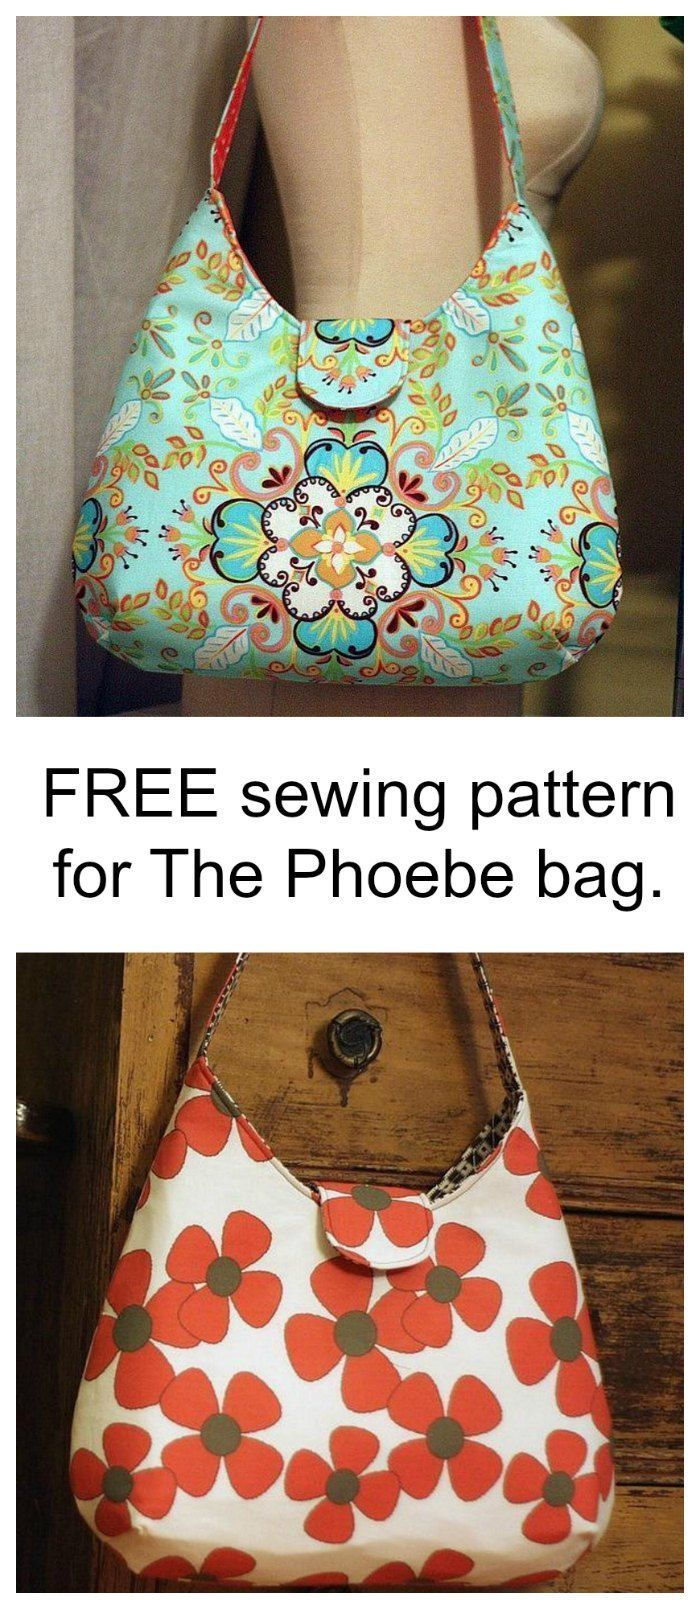 FREE sewing pattern for The Phoebe bag. Use this FREE pattern to ...